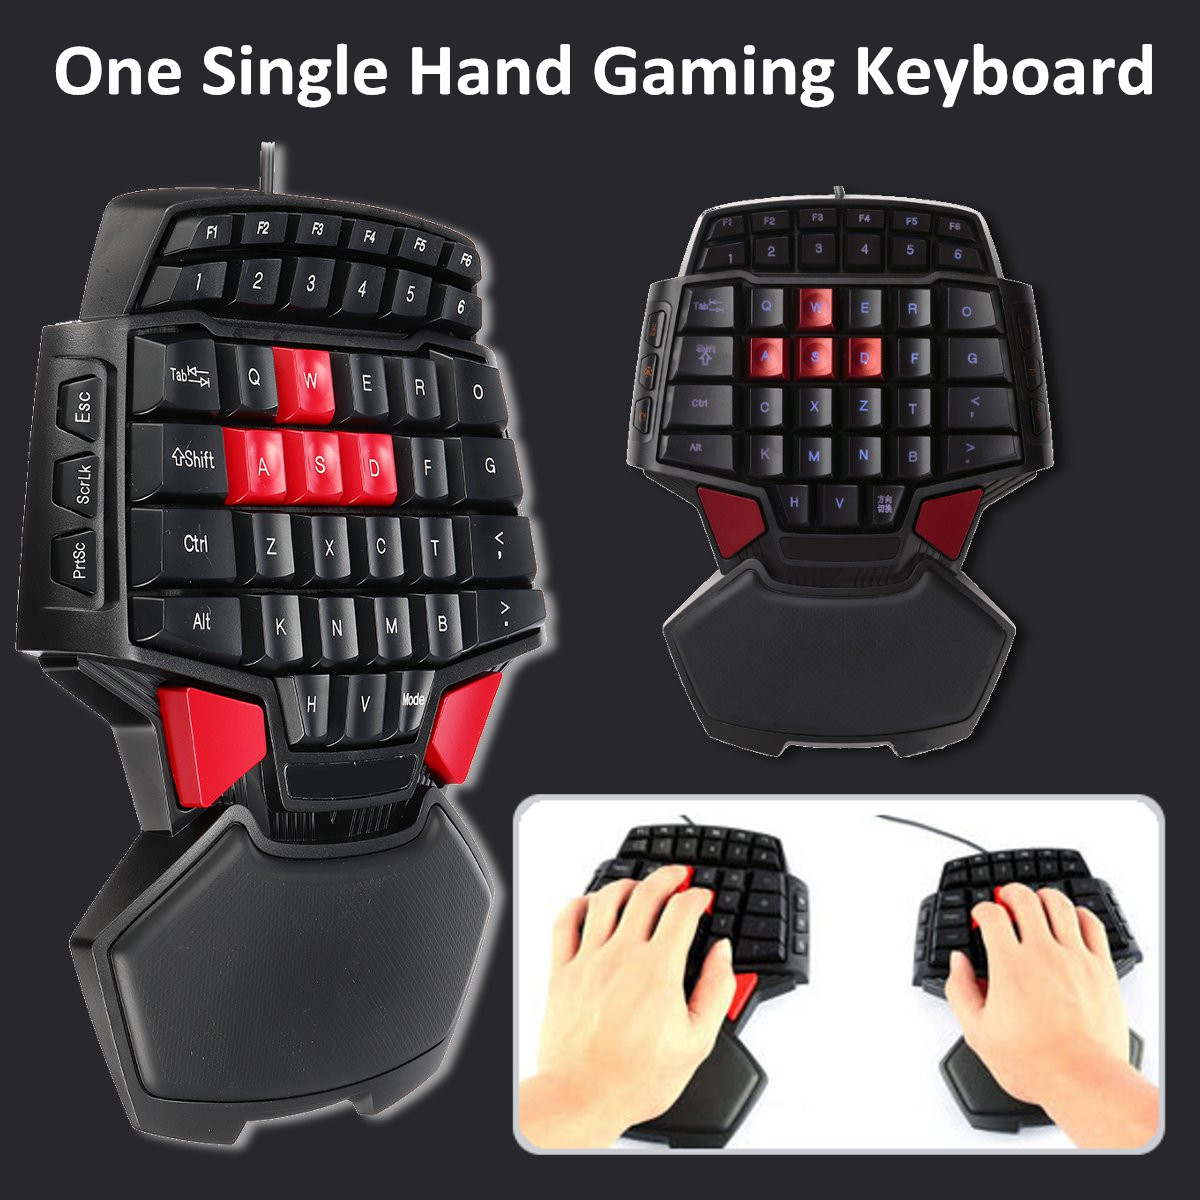 DeLUX T9 47 Key USB Wired Mini Single Hand Gaming Keyboard for PC Laptop